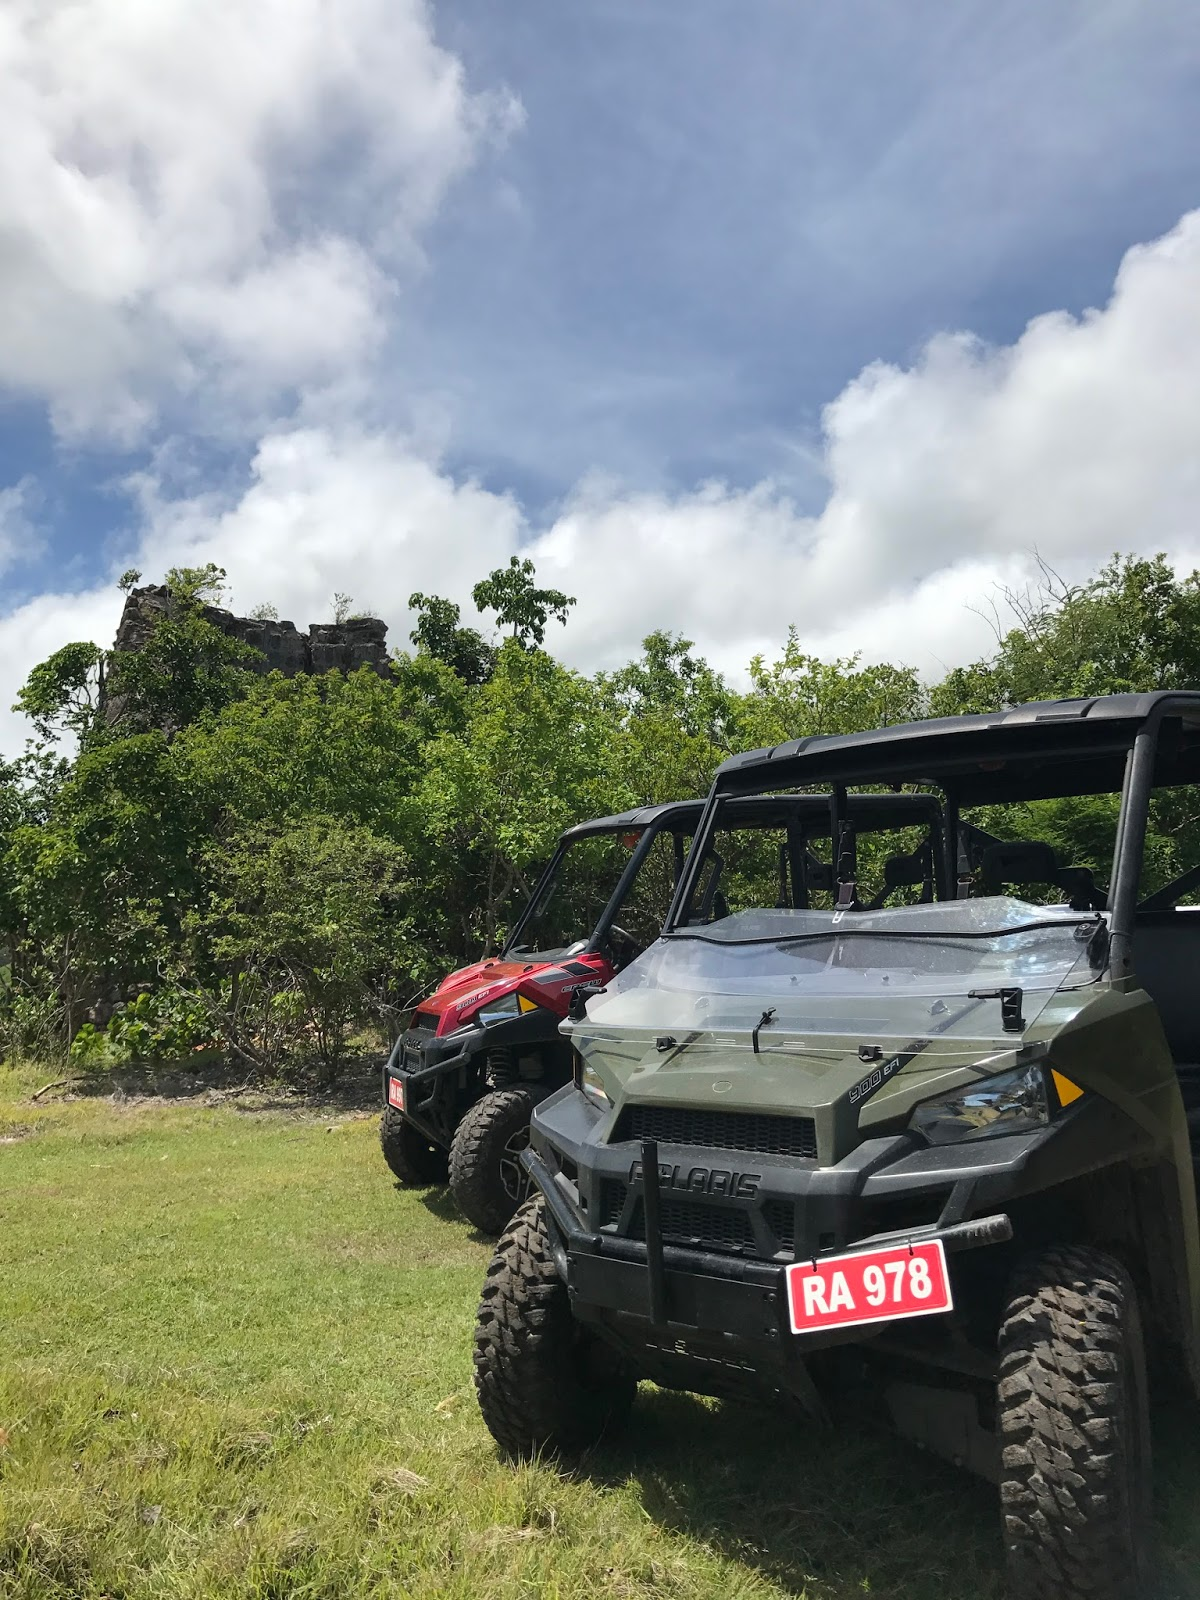 off-road vehicles at a historic site on Nevis Island